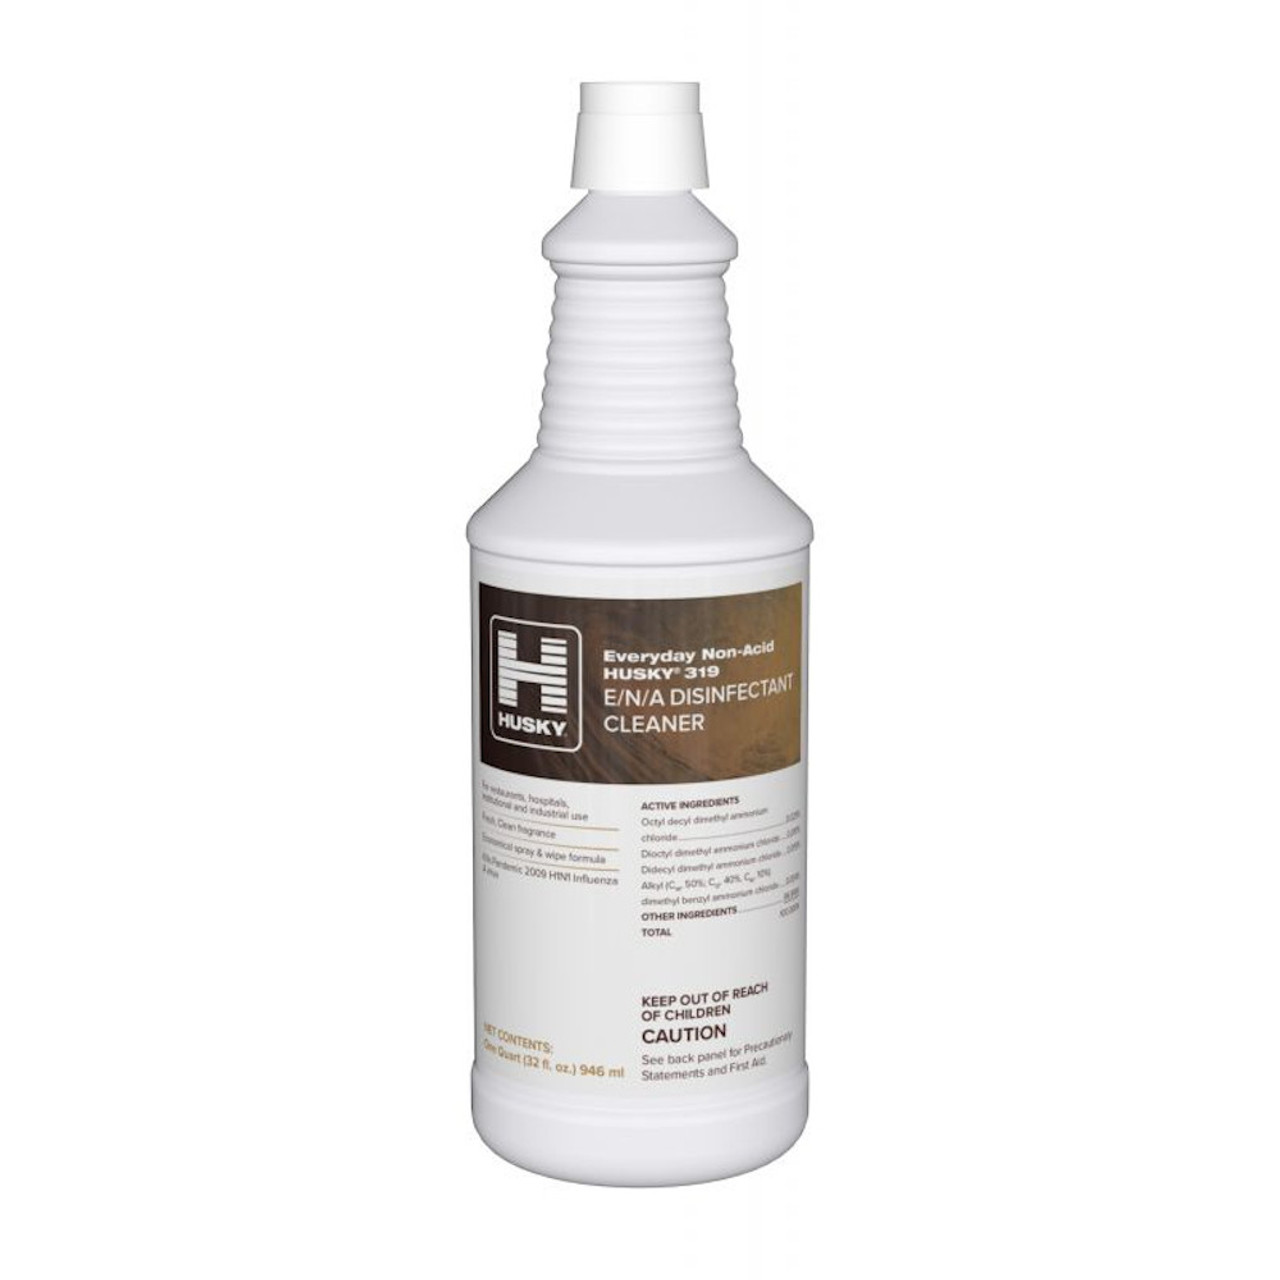 Husky 319 makes restroom surfaces safer by killing harmful bacteria and viruses. Cleans and disinfects all hard non-porous surfaces in restrooms.